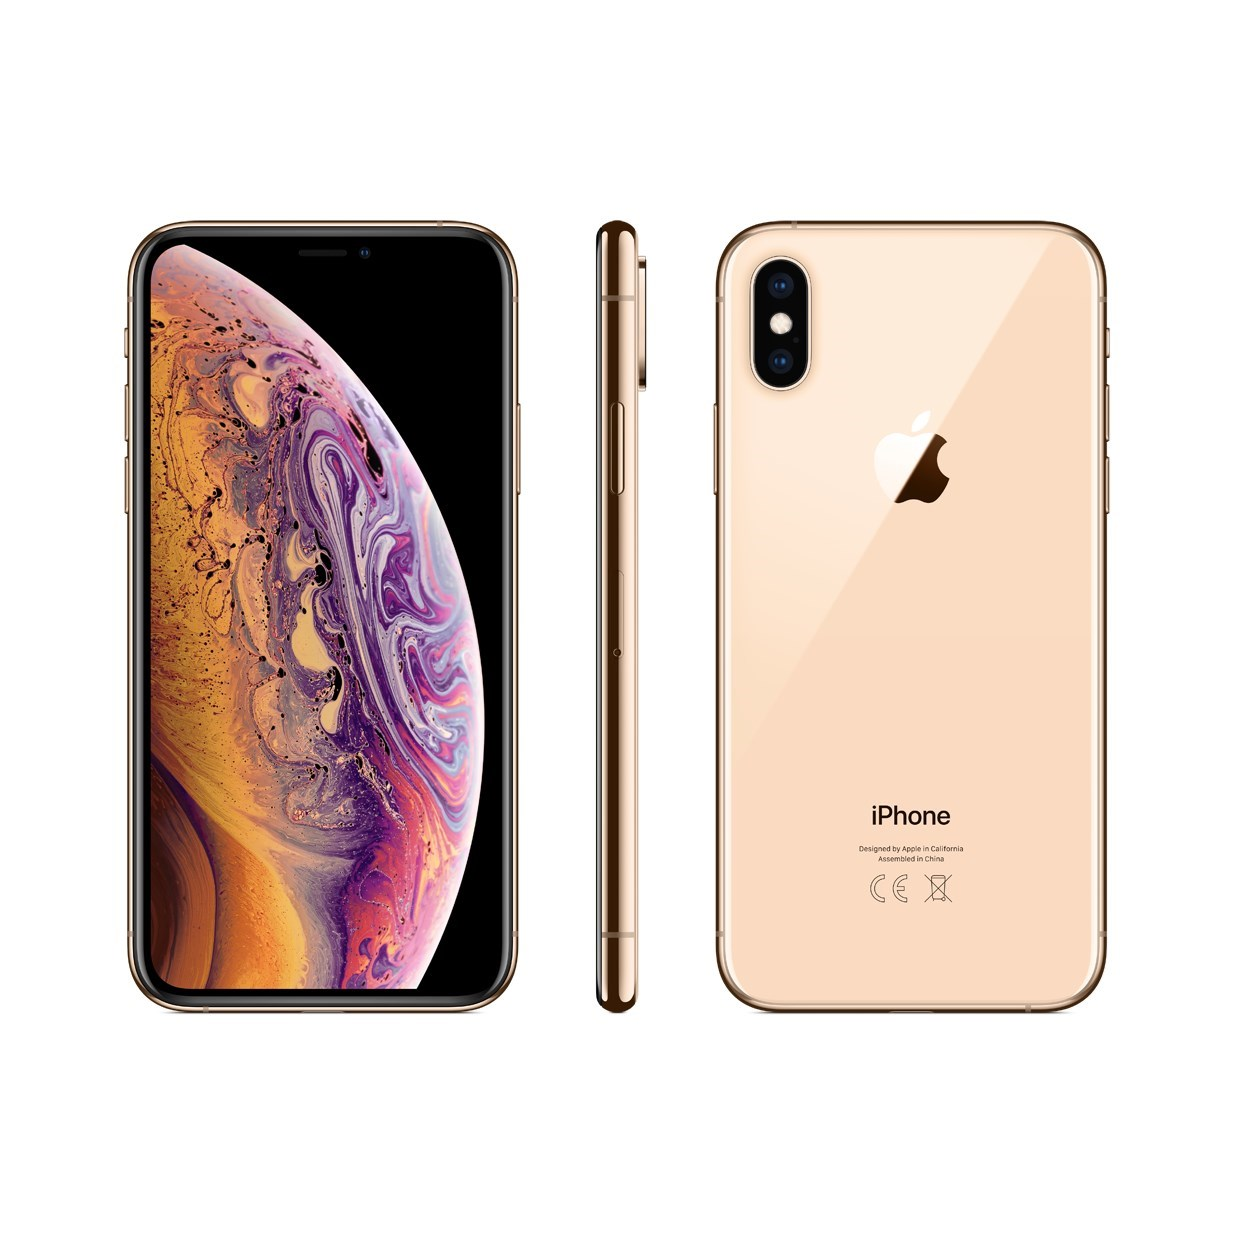 Image of Apple iPhone XS 64GB Dual sim (nano-SIM & eSIM) A1920 With Generic Tempered Glass Screen Protector- Gold